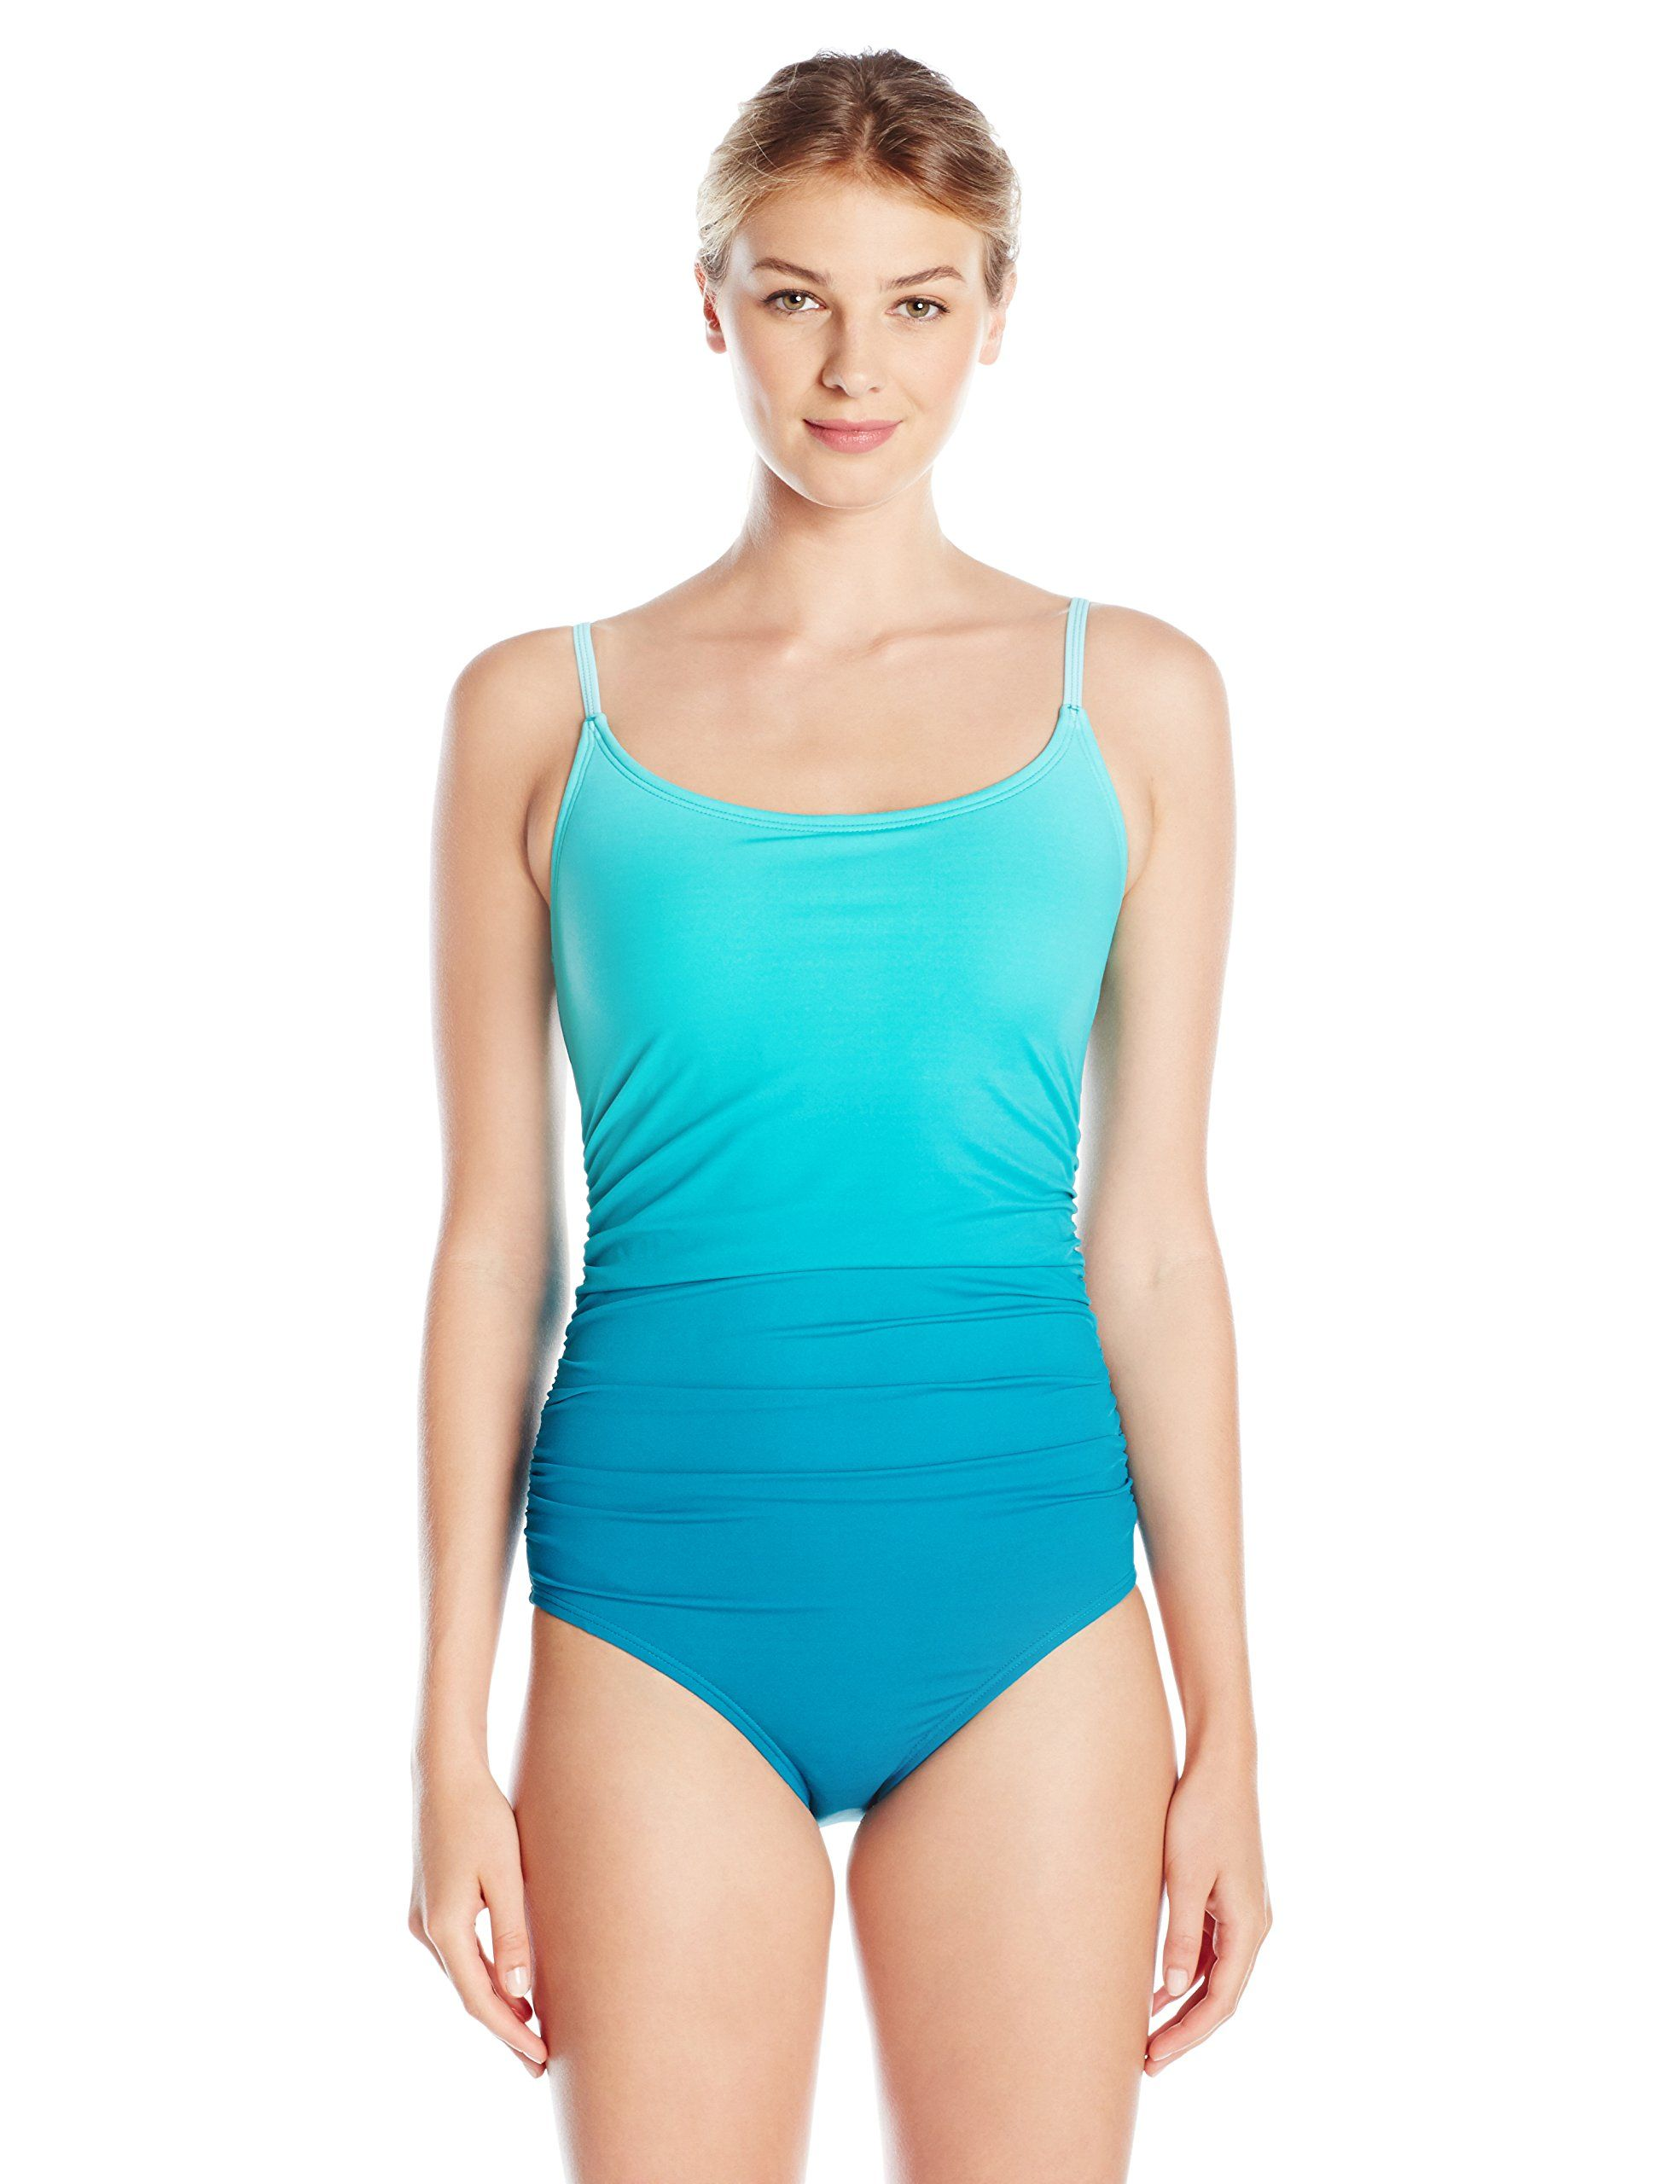 f416ae144a93a Speedo Women's Ombre Shirred One Piece Swimsuit, Mystic Teal, 16. Lycra  extra life